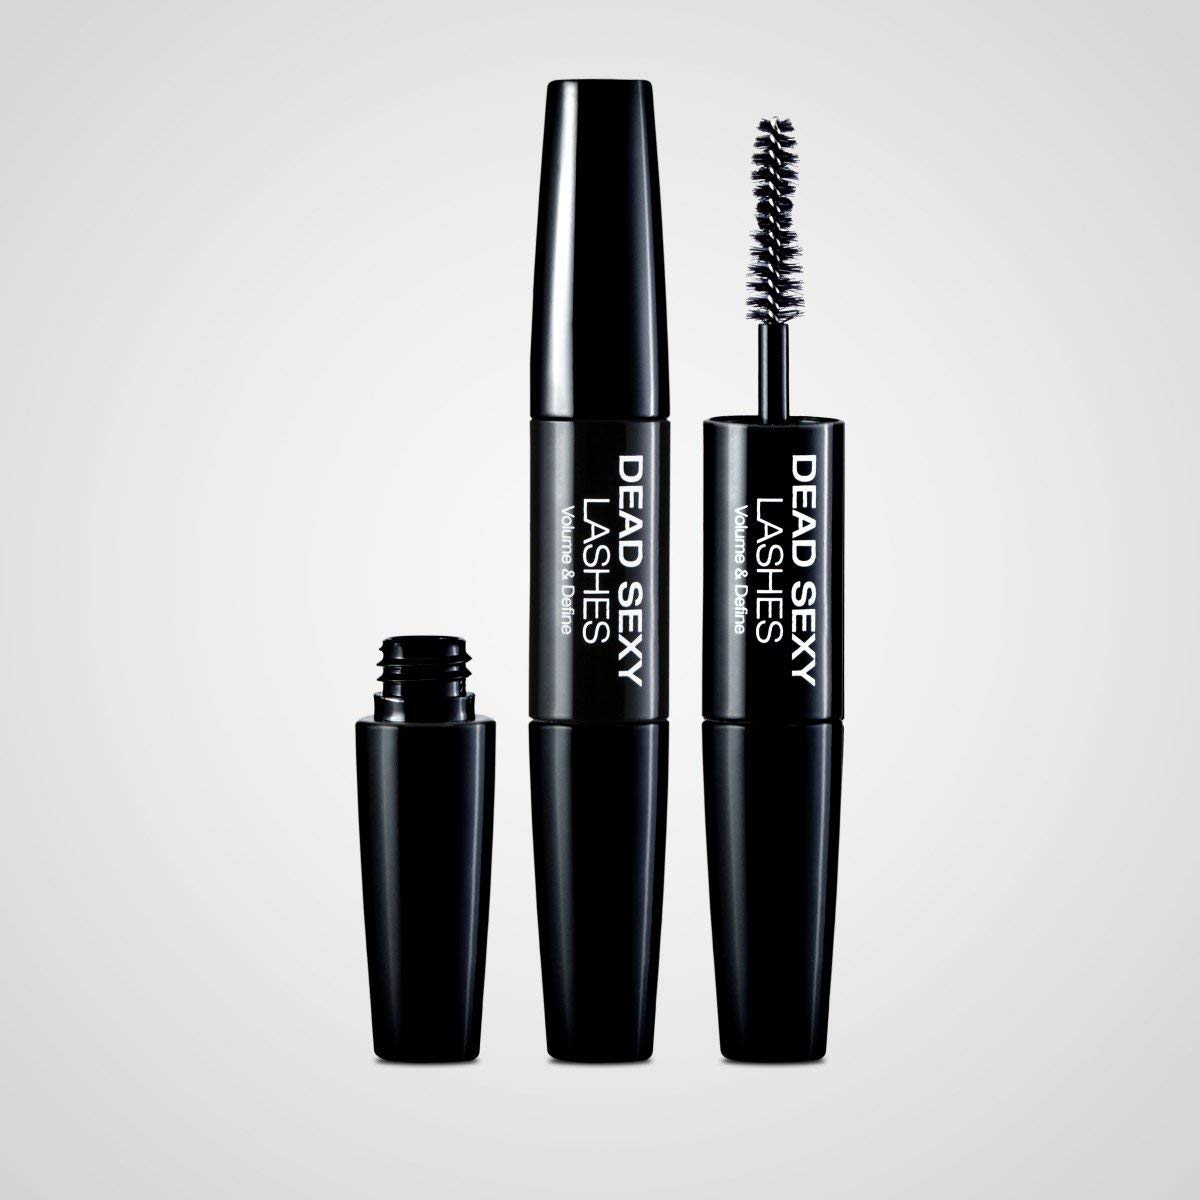 KISS NY Professional Dead Sexy Lashes Mascara Volume & Define Blackest Black (KVDM01)